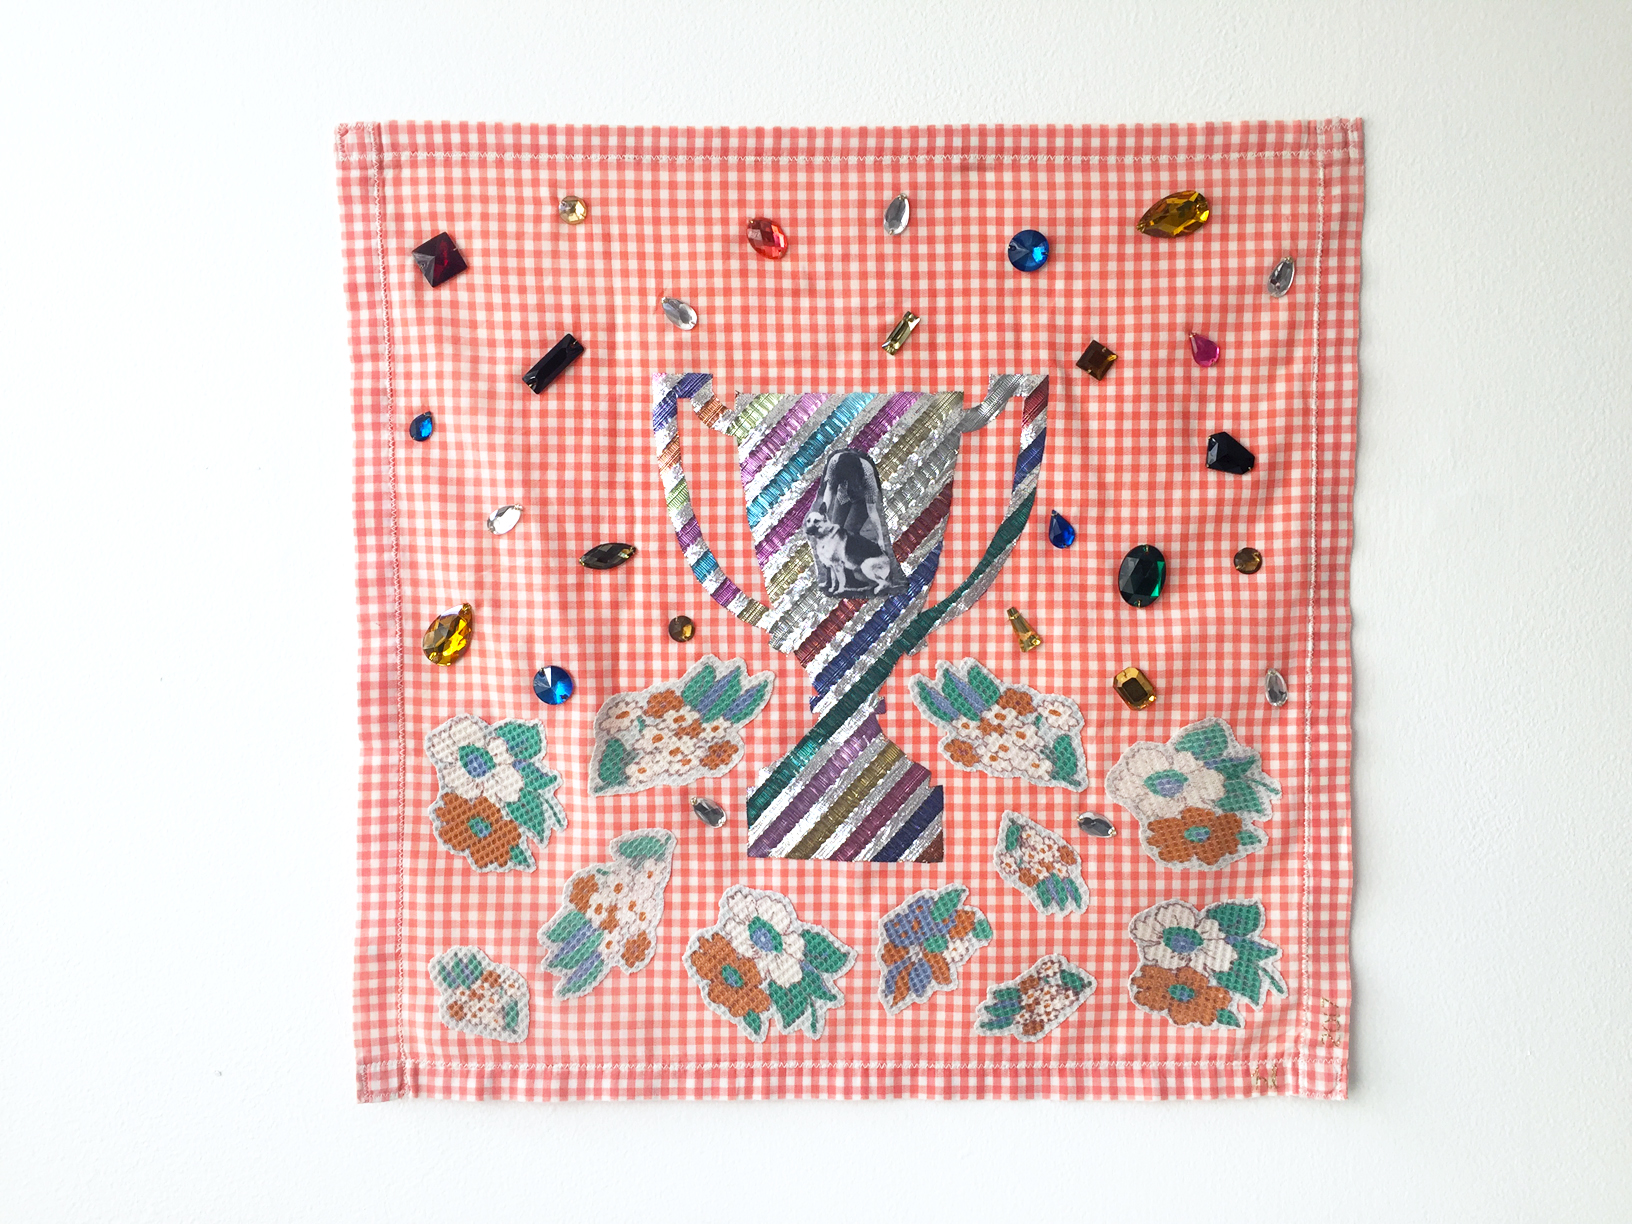 Number 1 Best Friend #2, 2017, textile object, found fabric on handmade cotton placemat, digital print on cotton, polyester, found plastic gems, 390mm x 385mm